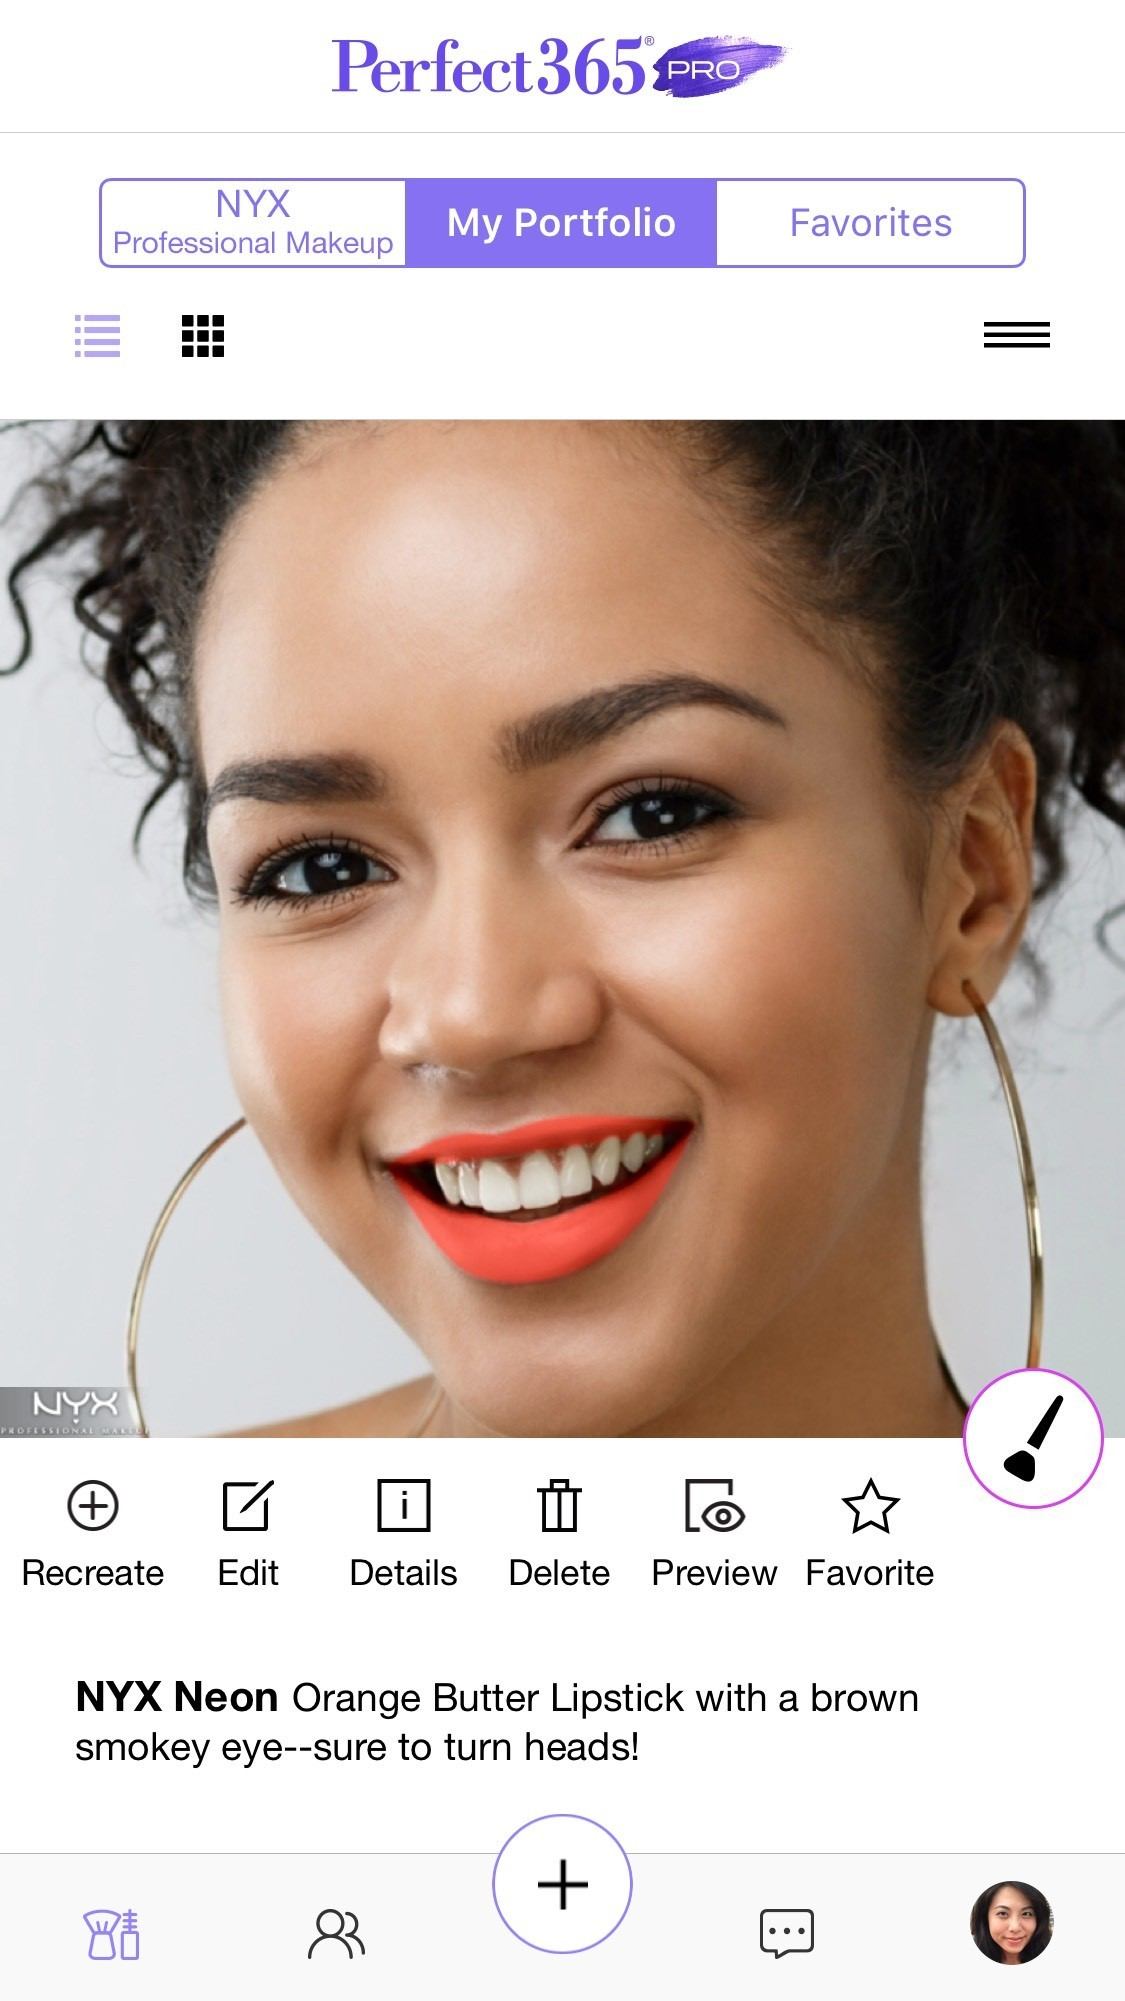 Perfect365 PRO, the first and only beauty platform for professional makeup artists and their clients. (Photo: Business Wire)